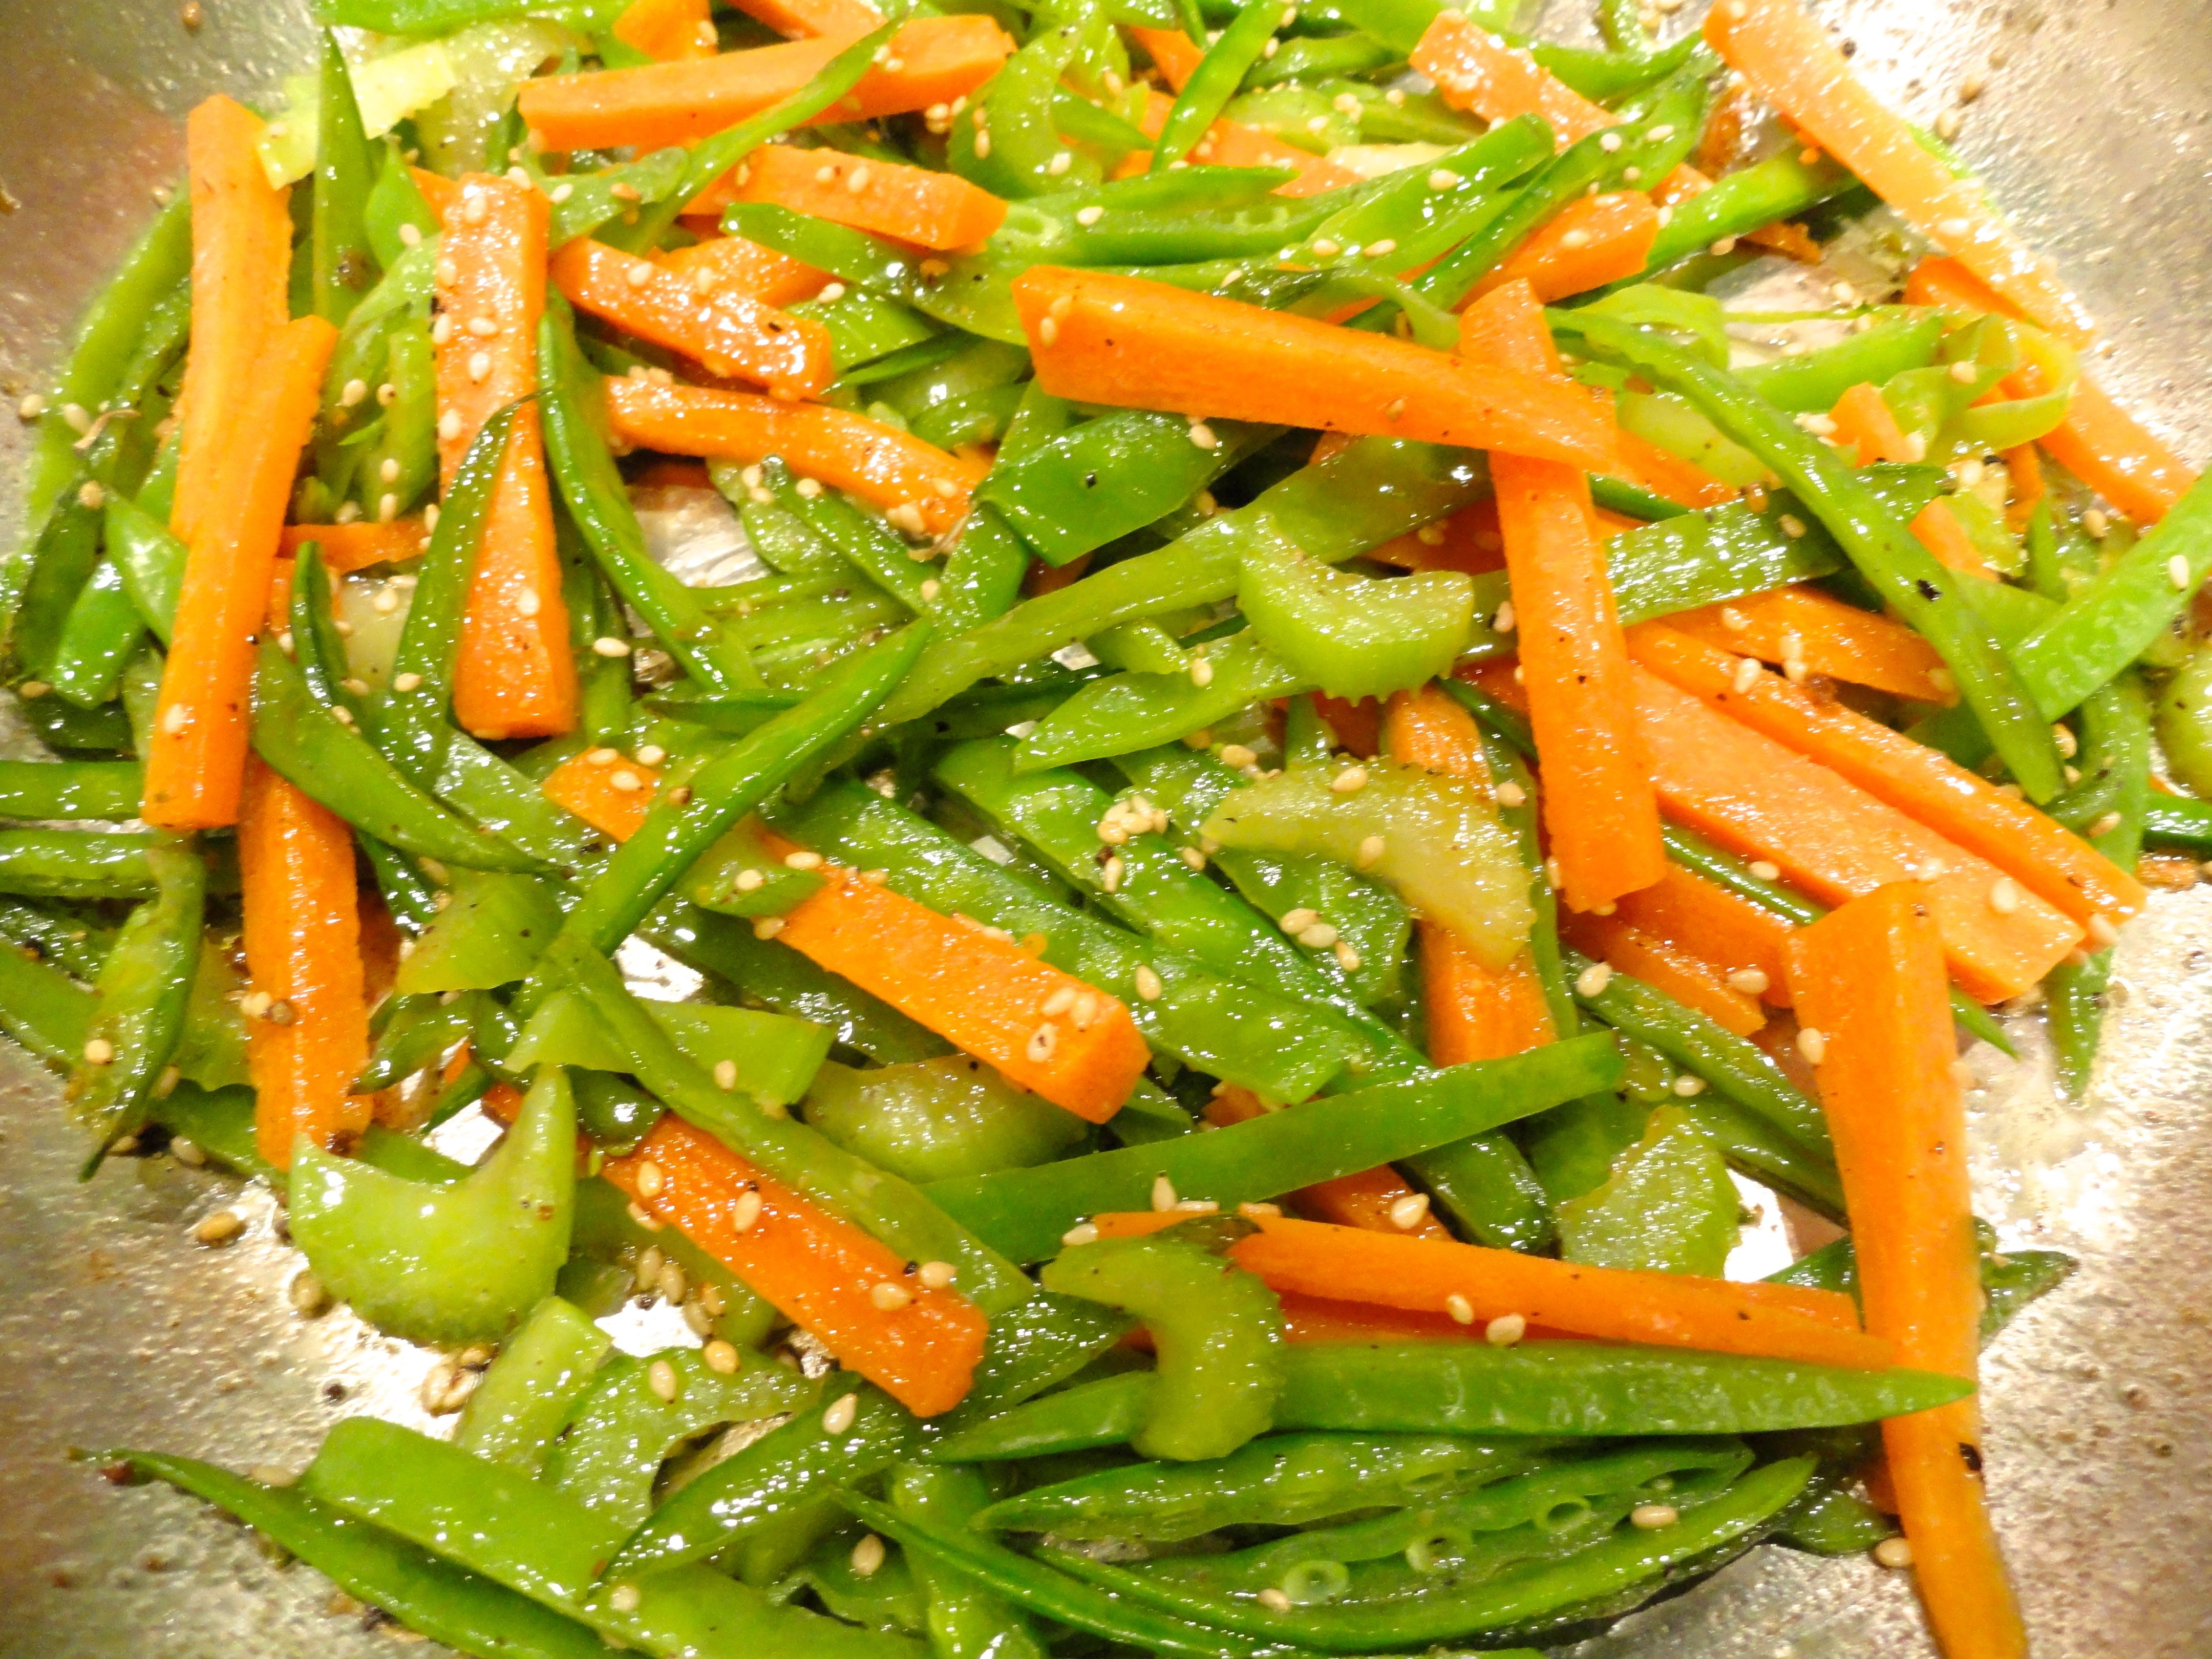 Carrot Snow Pea and Celery Stir Fry - LindySez | Recipes, Tips, Blog